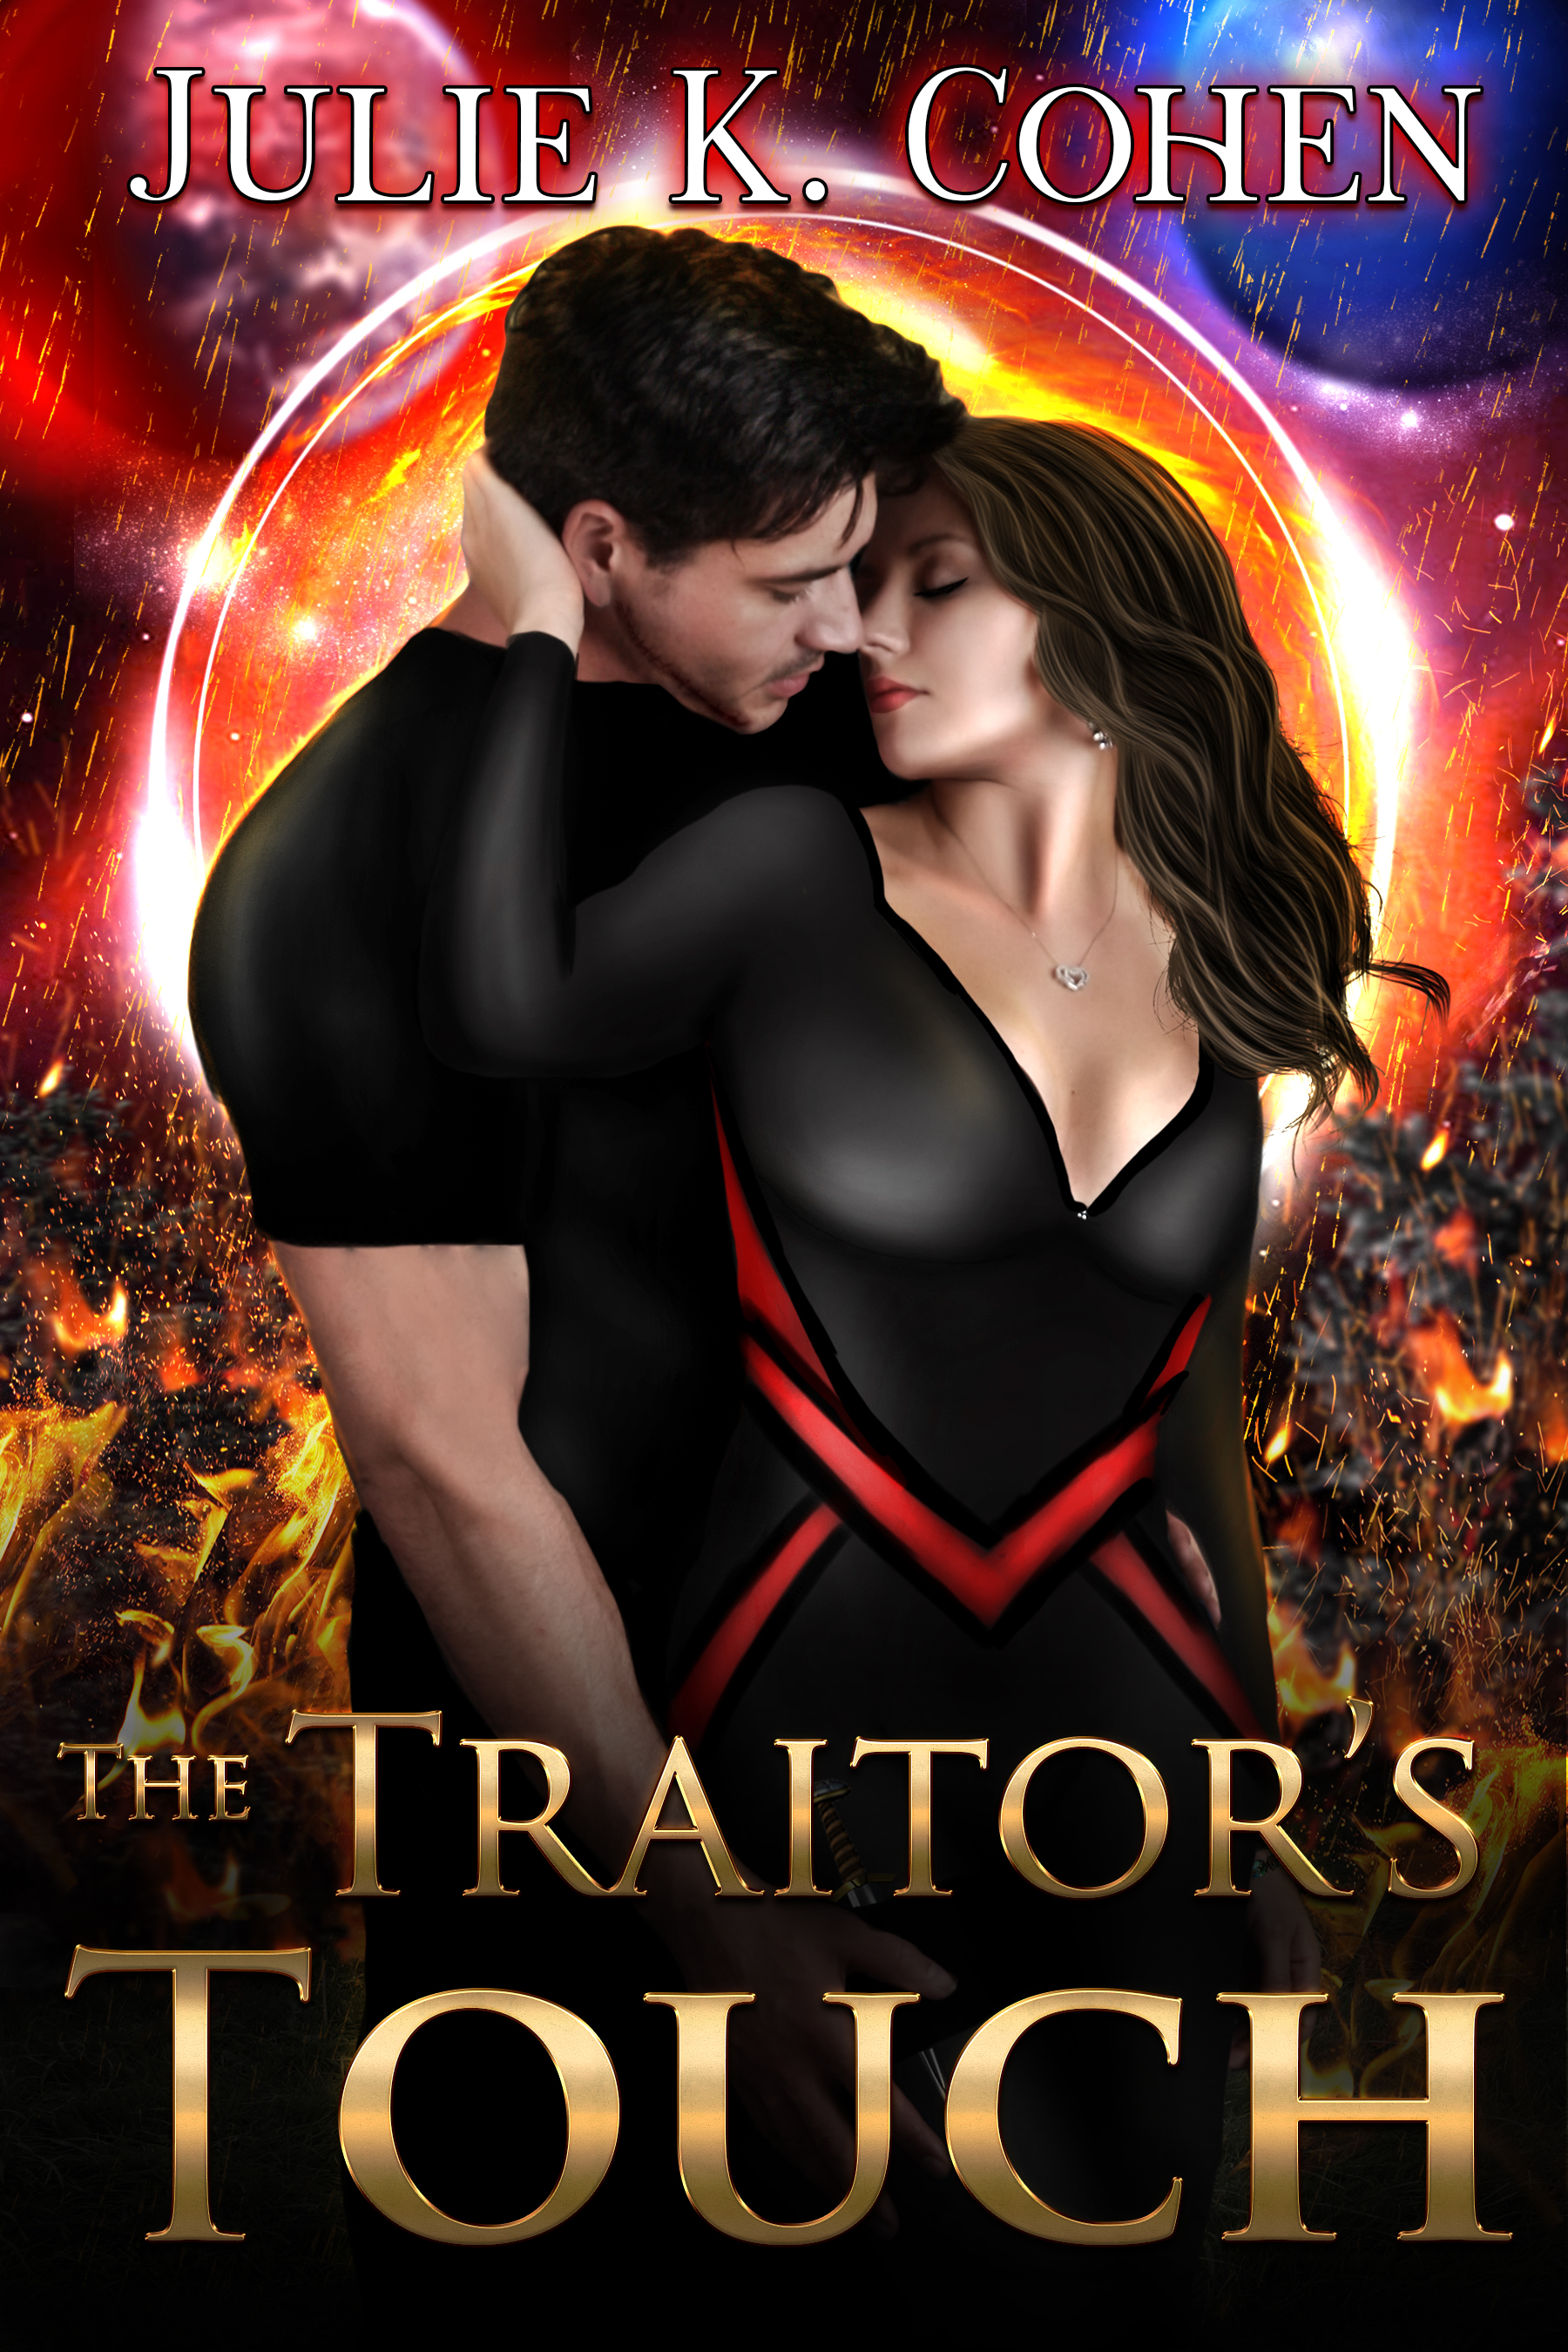 The Traitor's Touch